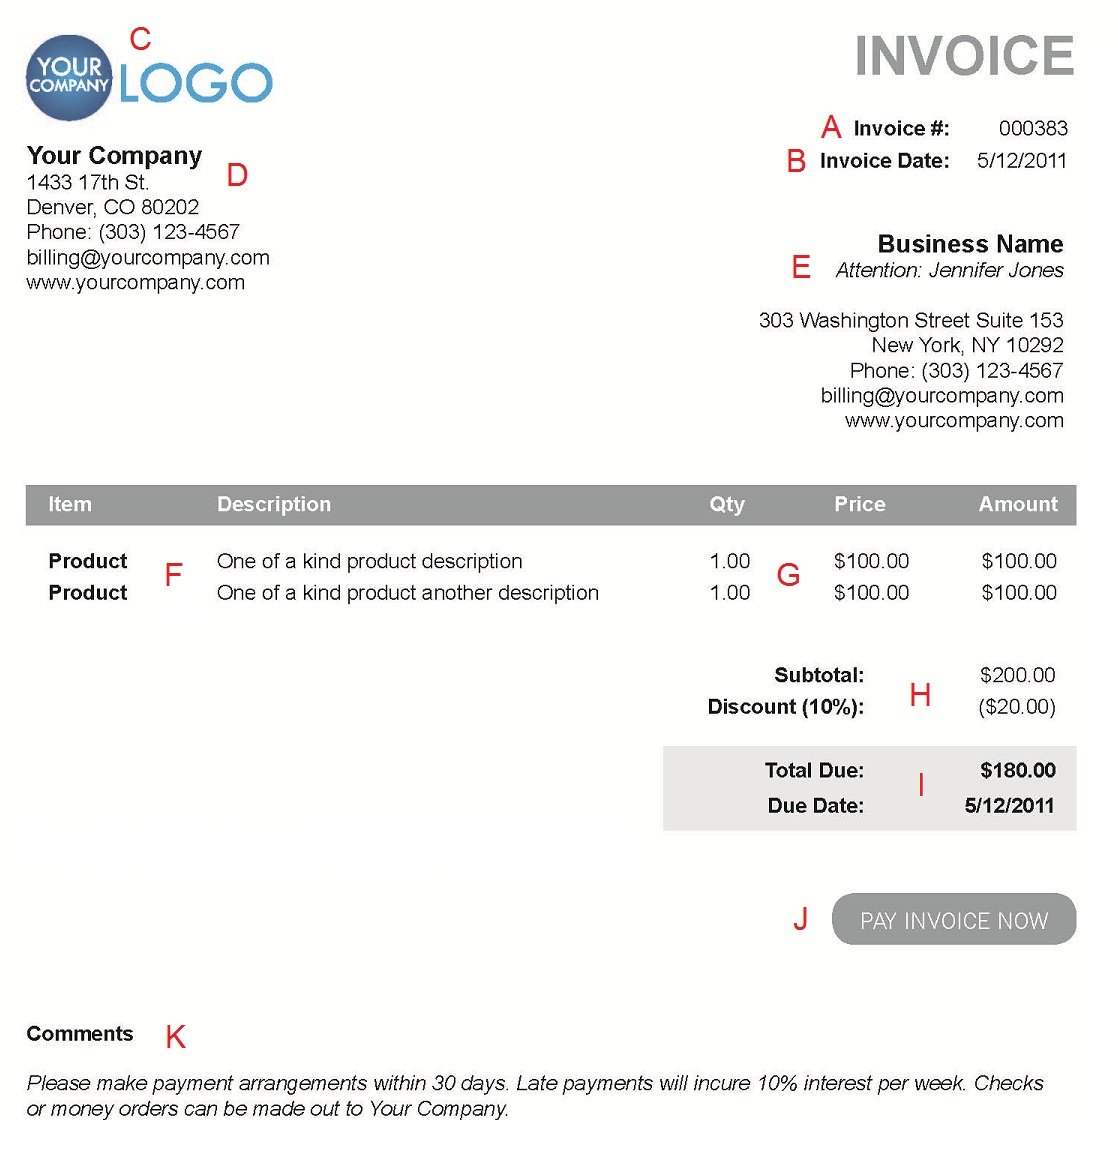 Coolmathgamesus  Unusual The  Different Sections Of An Electronic Payment Invoice With Extraordinary A  With Lovely Revised Invoice Also Invoice Template Word In Addition Zoho Invoice And Invoice Number Meaning As Well As Square Invoice Additionally Google Docs Invoice Template From Paysimplecom With Coolmathgamesus  Extraordinary The  Different Sections Of An Electronic Payment Invoice With Lovely A  And Unusual Revised Invoice Also Invoice Template Word In Addition Zoho Invoice From Paysimplecom